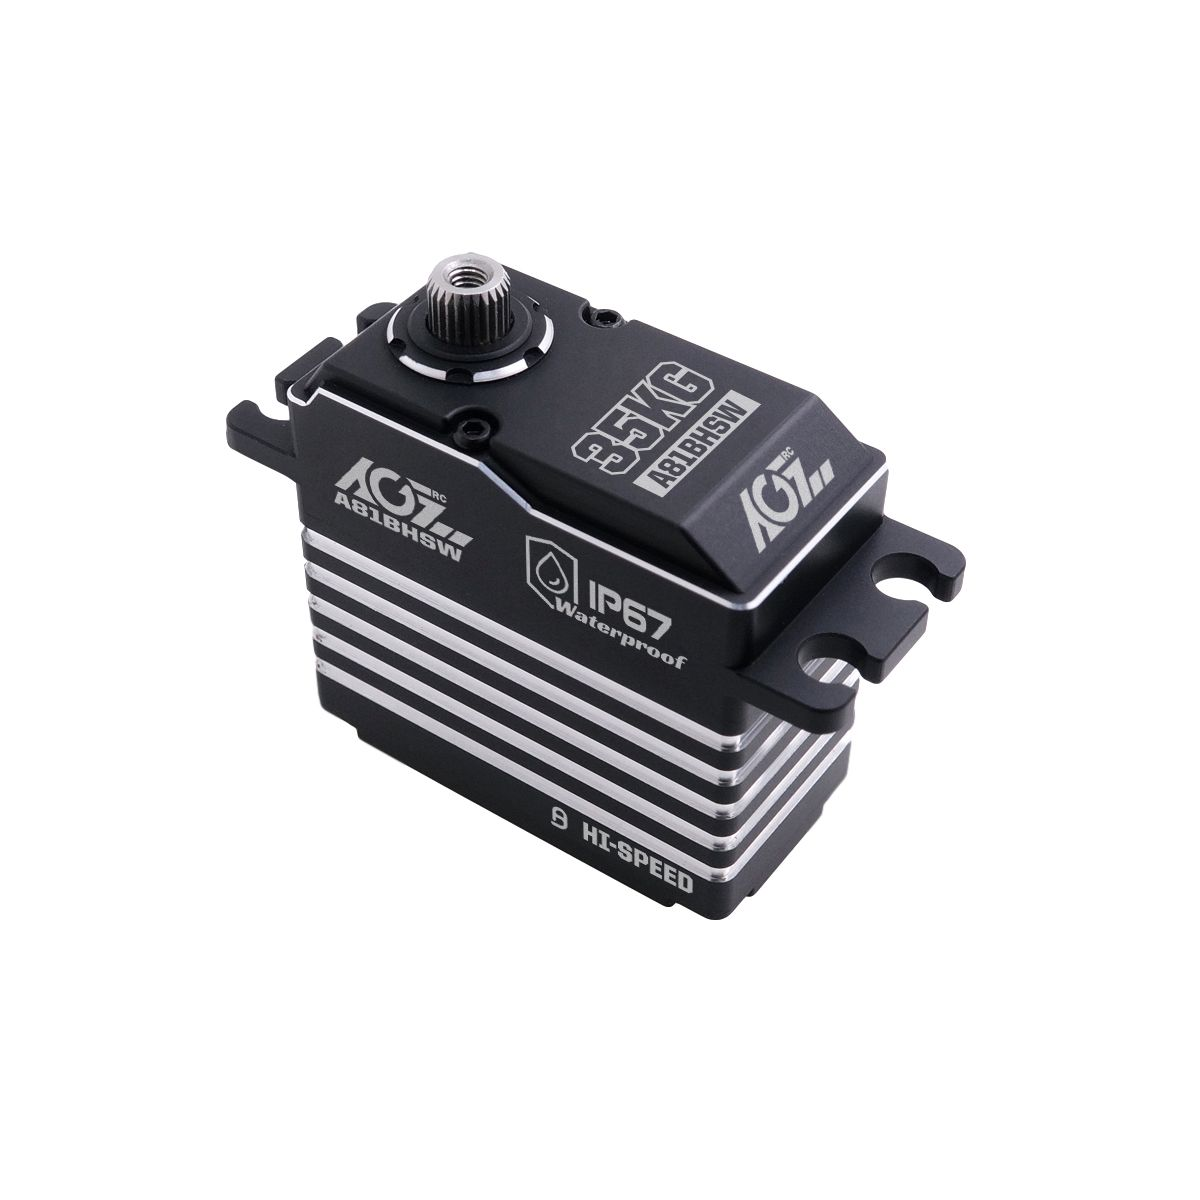 AGFRC A81BHSW HV 0.075s High Speed STD Size Extra Strong Steel Gear Magnetic Encoder Brushless Digital WP Servo For 1/10 RC Competition Boat